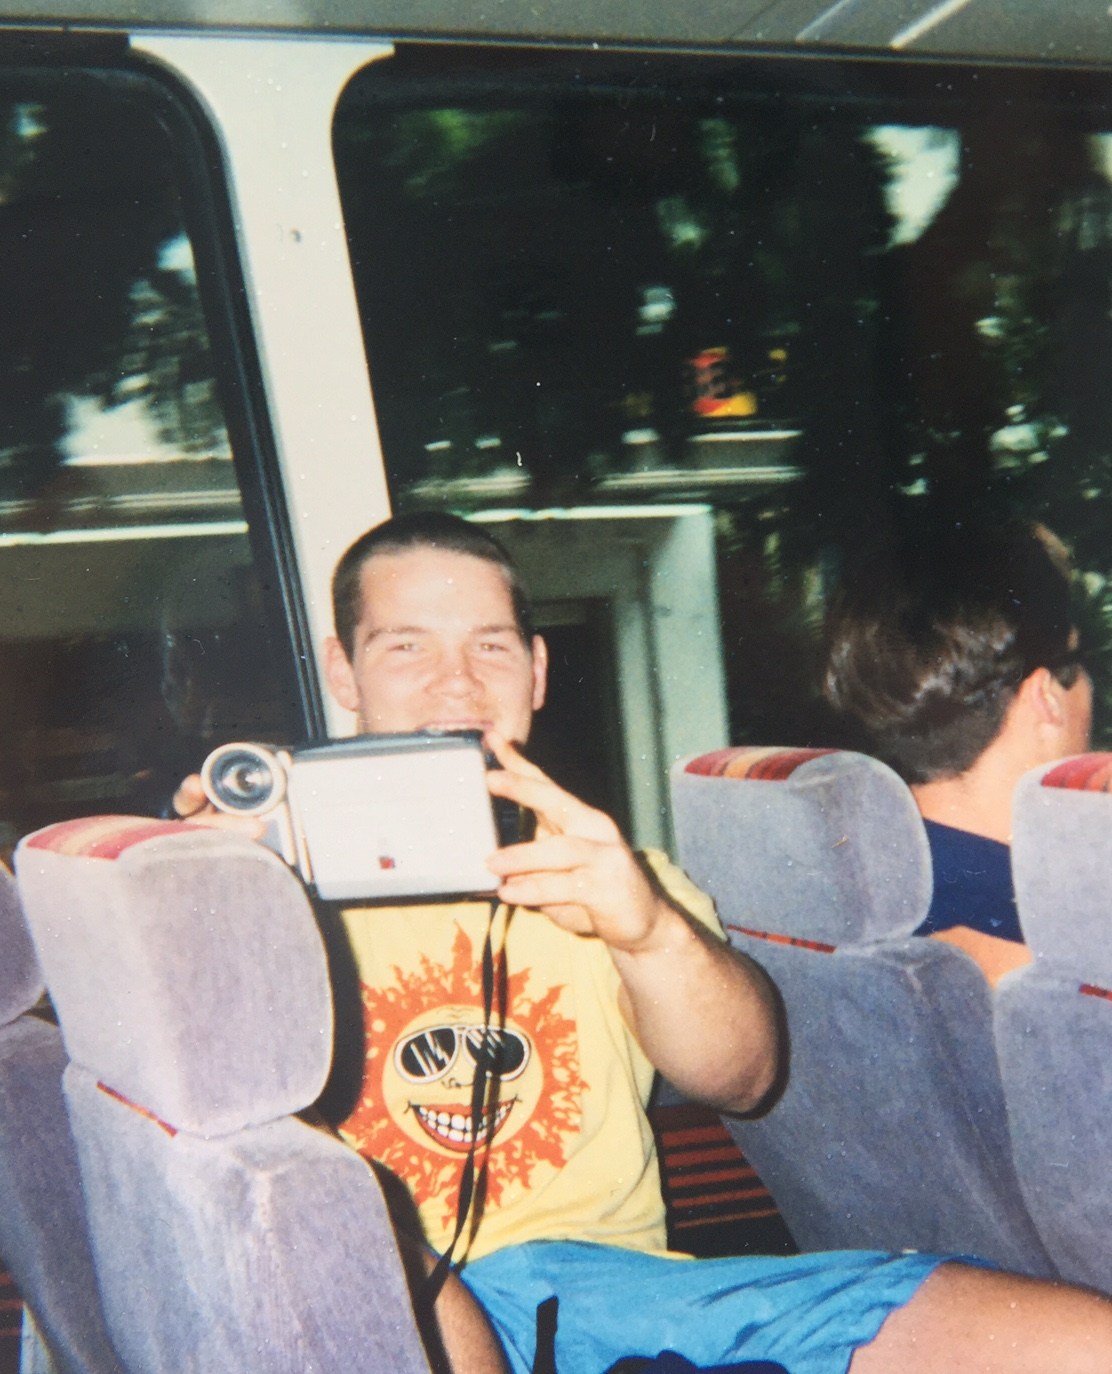 This was on the bus while in Hawaii...that's Honolulu's Finest, J. Gess sitting in front of you.